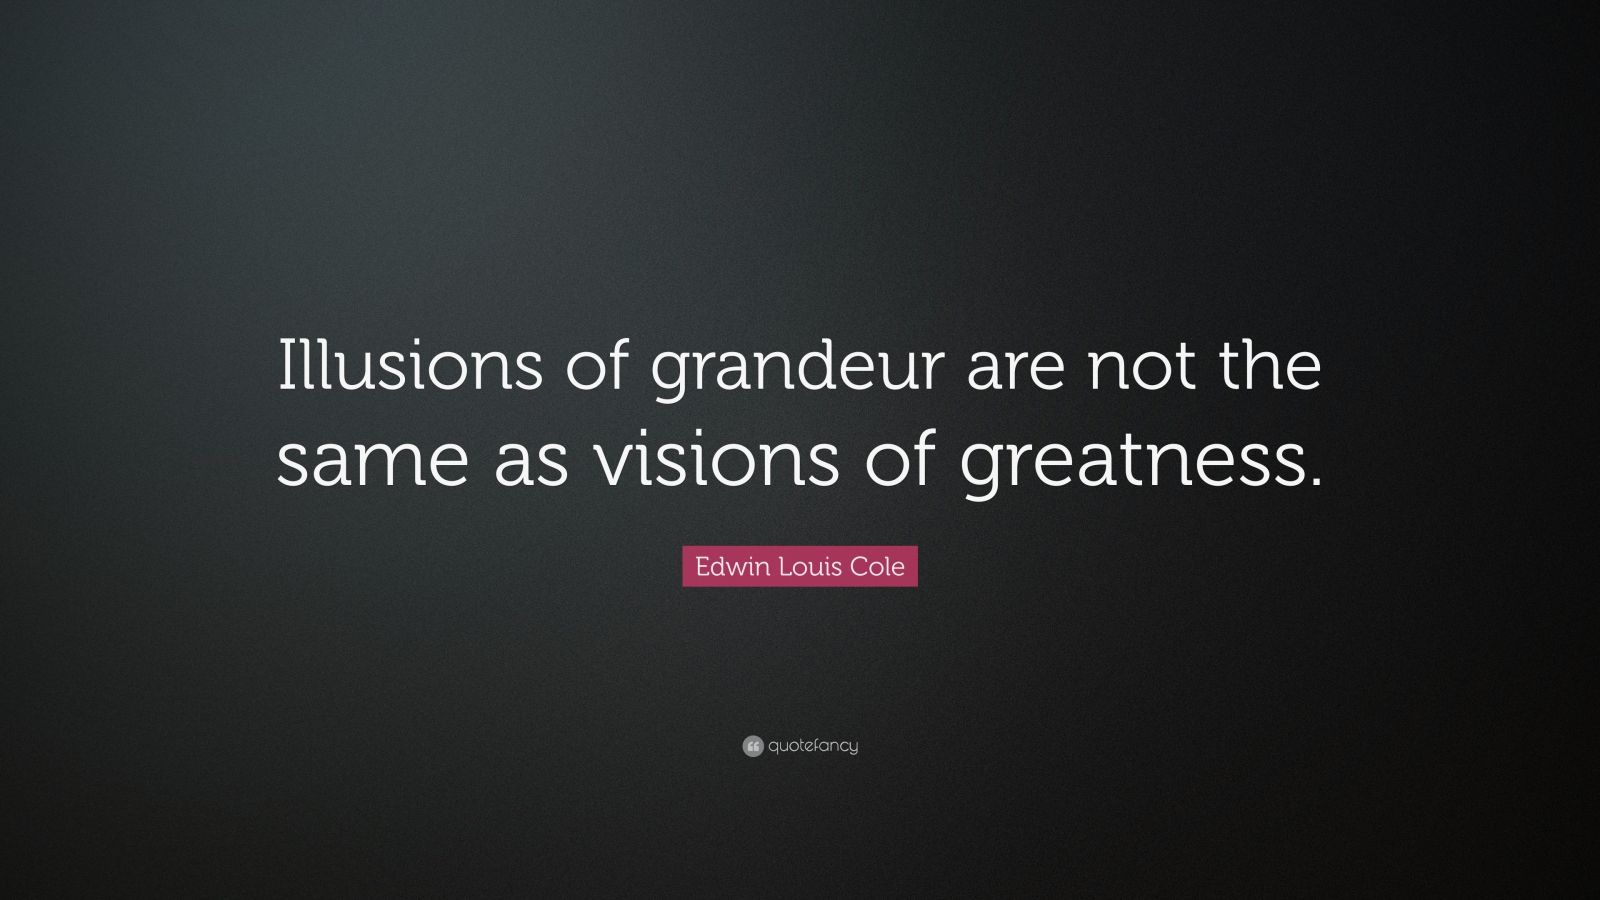 """Edwin Louis Cole Quote: """"Illusions of grandeur are not the same as visions of greatness."""""""